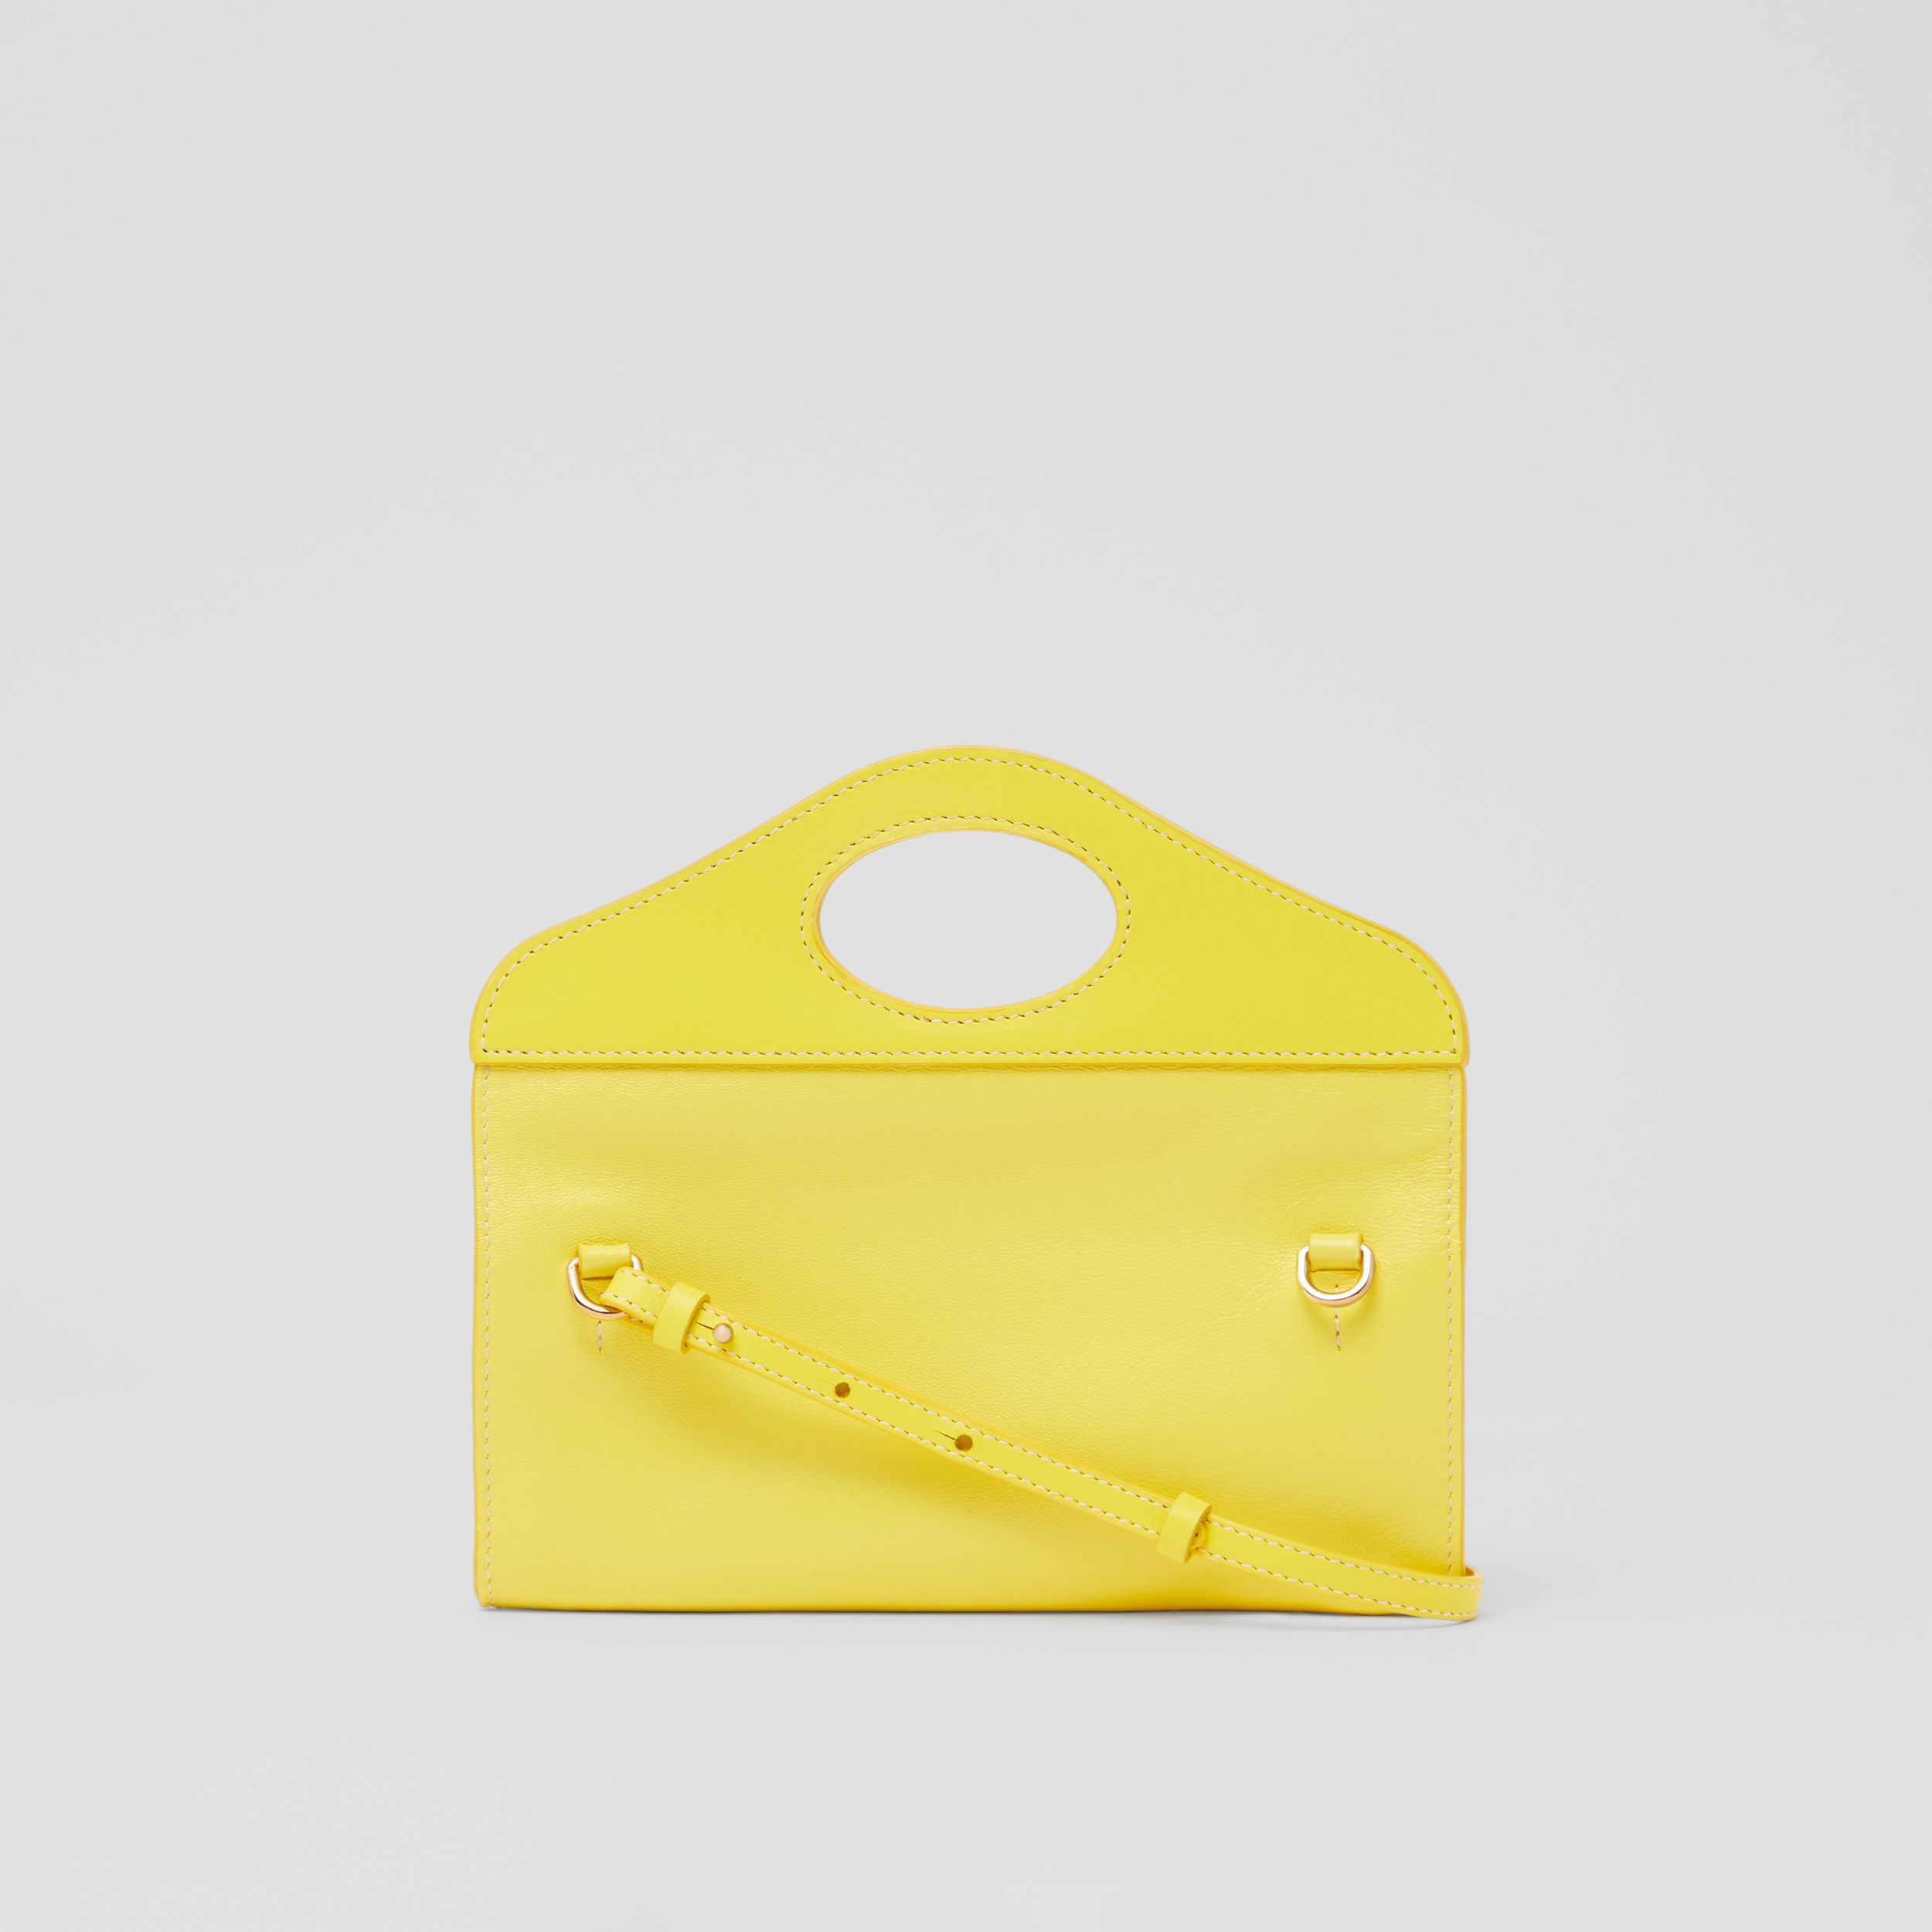 Mini Topstitched Lambskin Pocket Clutch in Marigold Yellow - Women | Burberry Hong Kong S.A.R. - 4